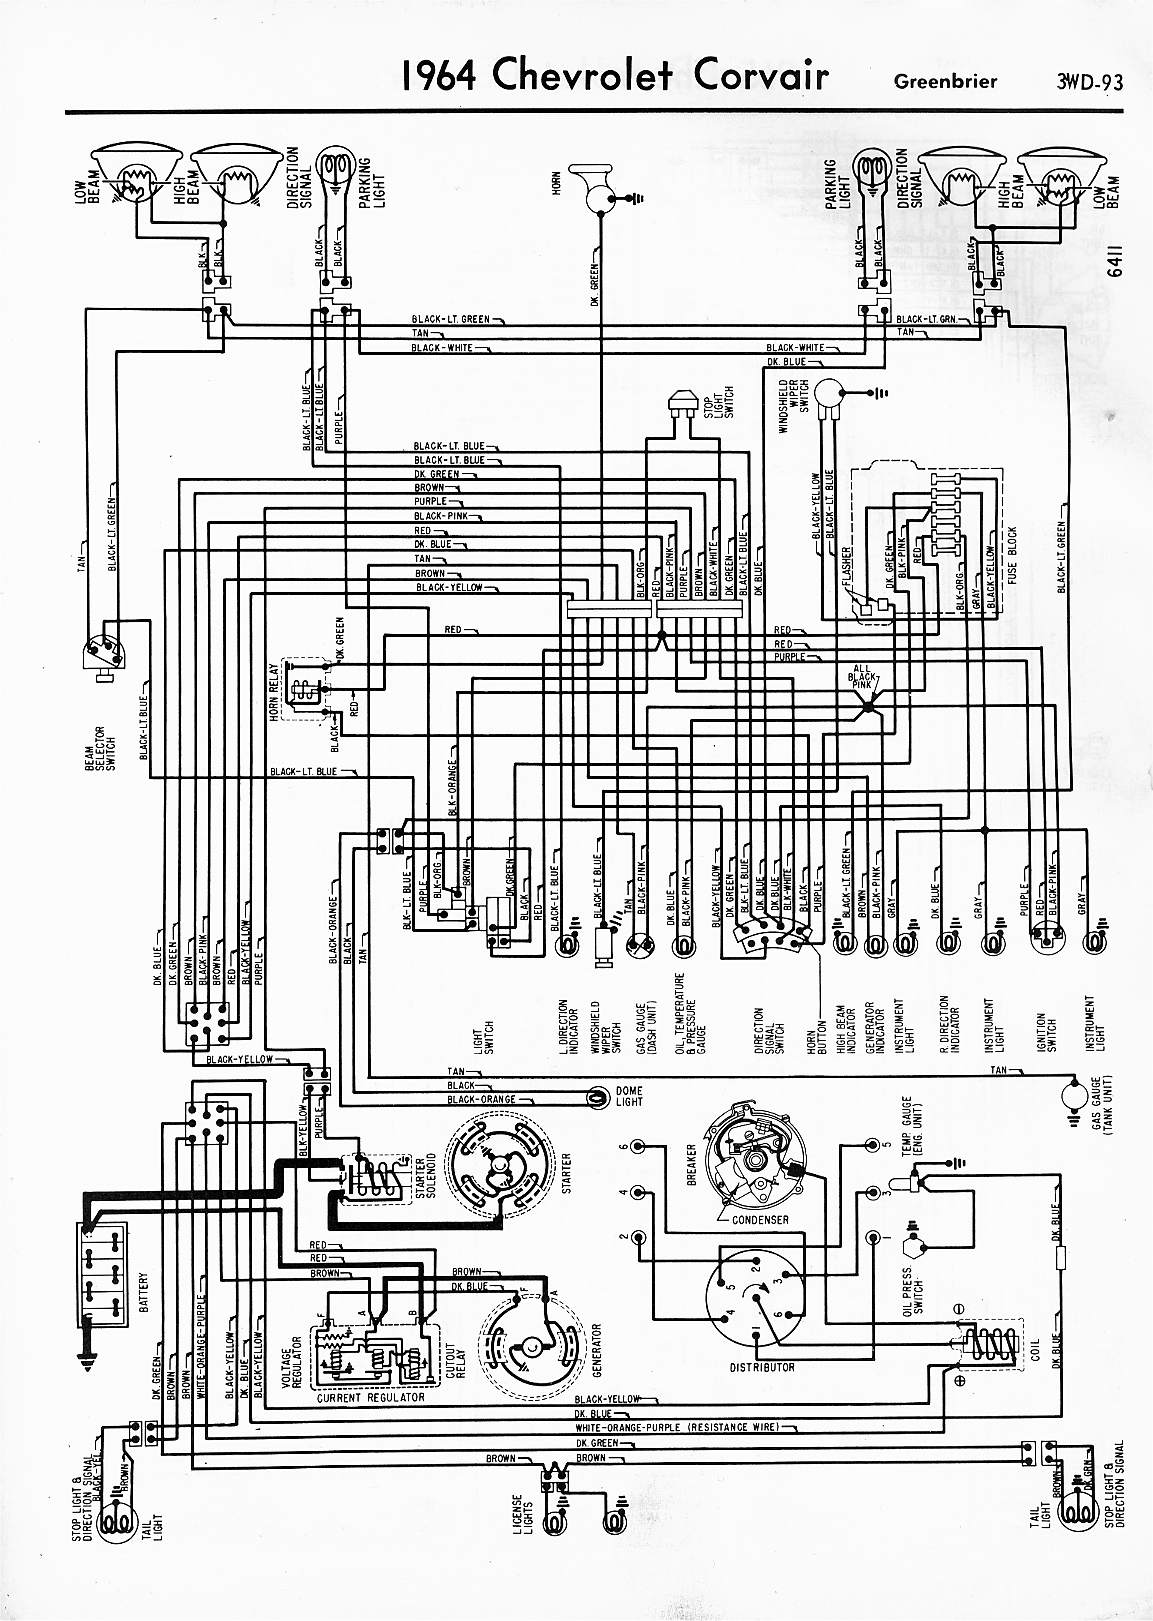 chevy wiring diagrams 1964 corvair greenbrier